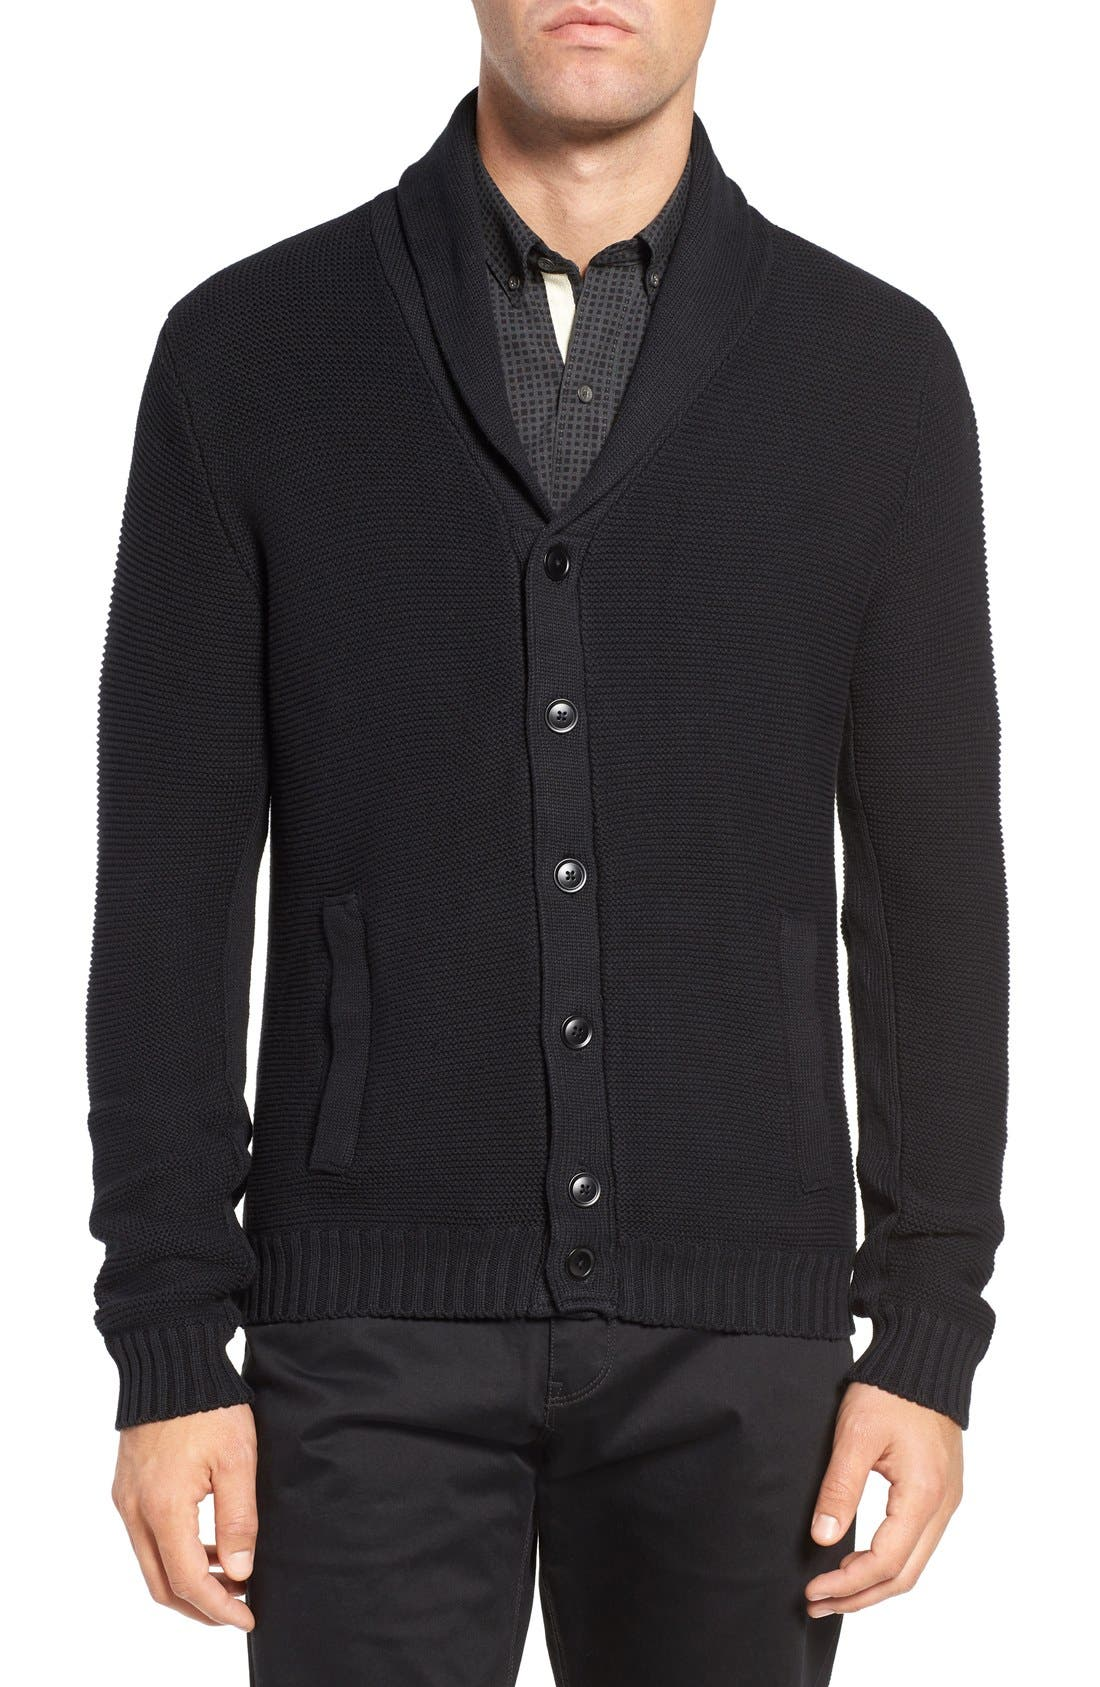 W.R.K Cypress Cotton Shawl Collar Cardigan